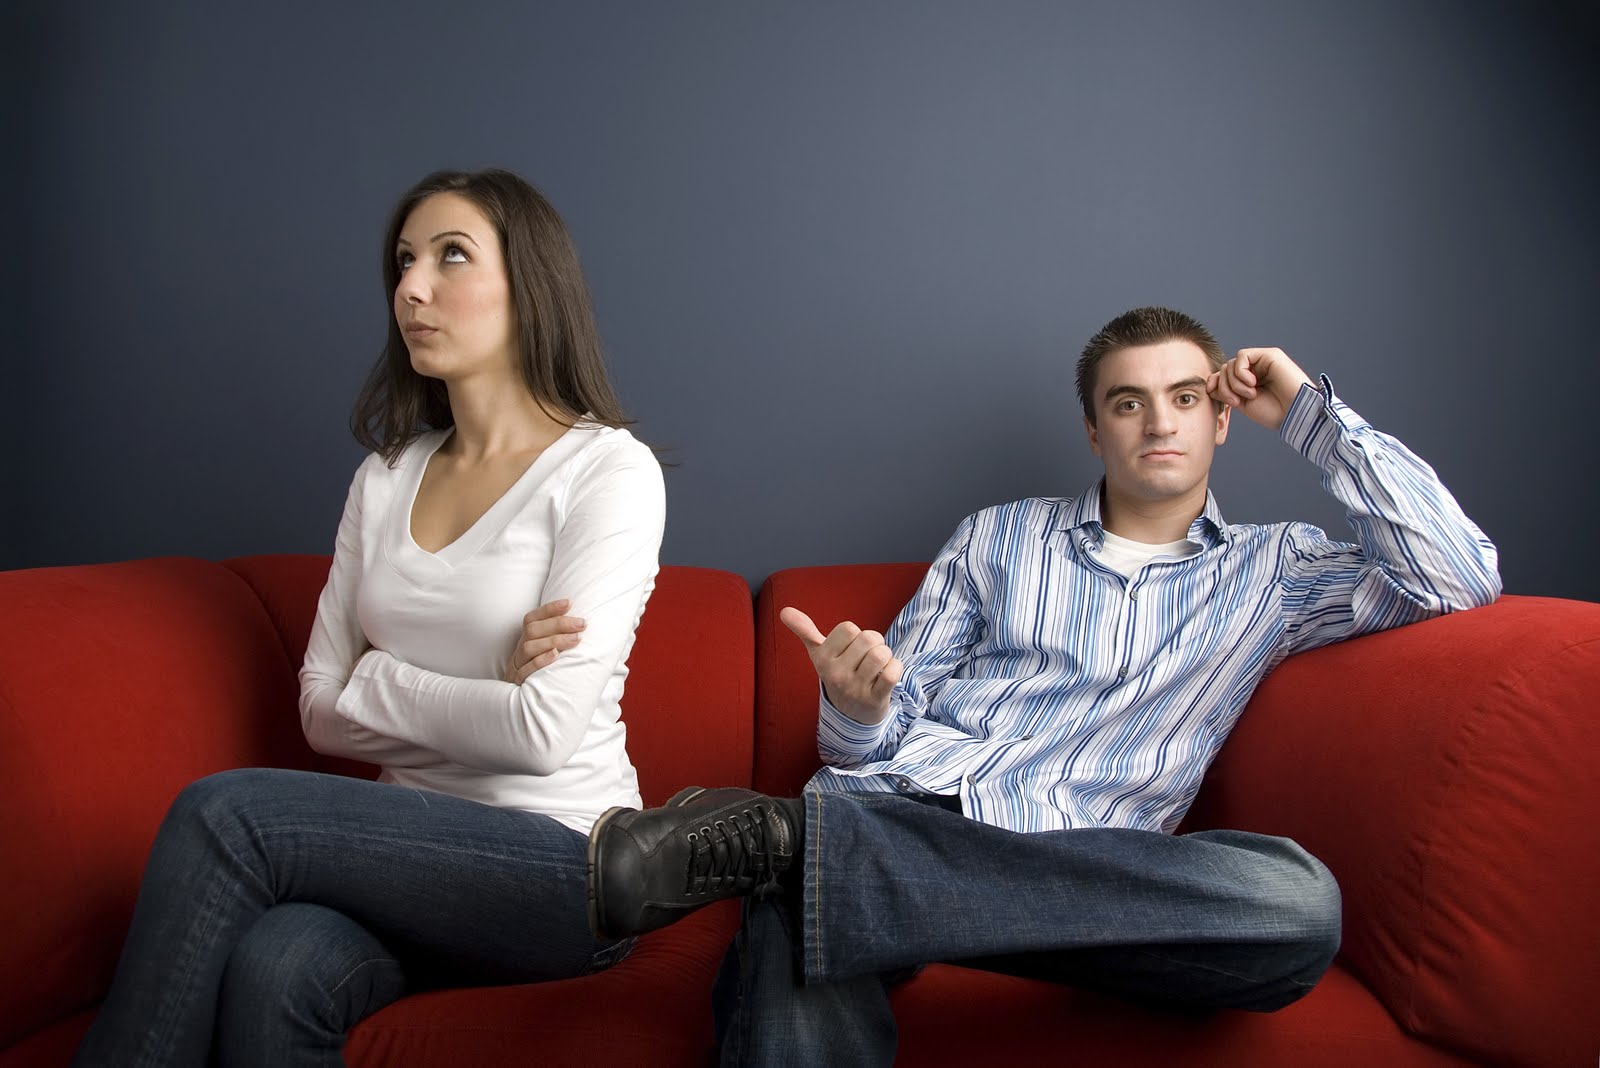 couplearguing5